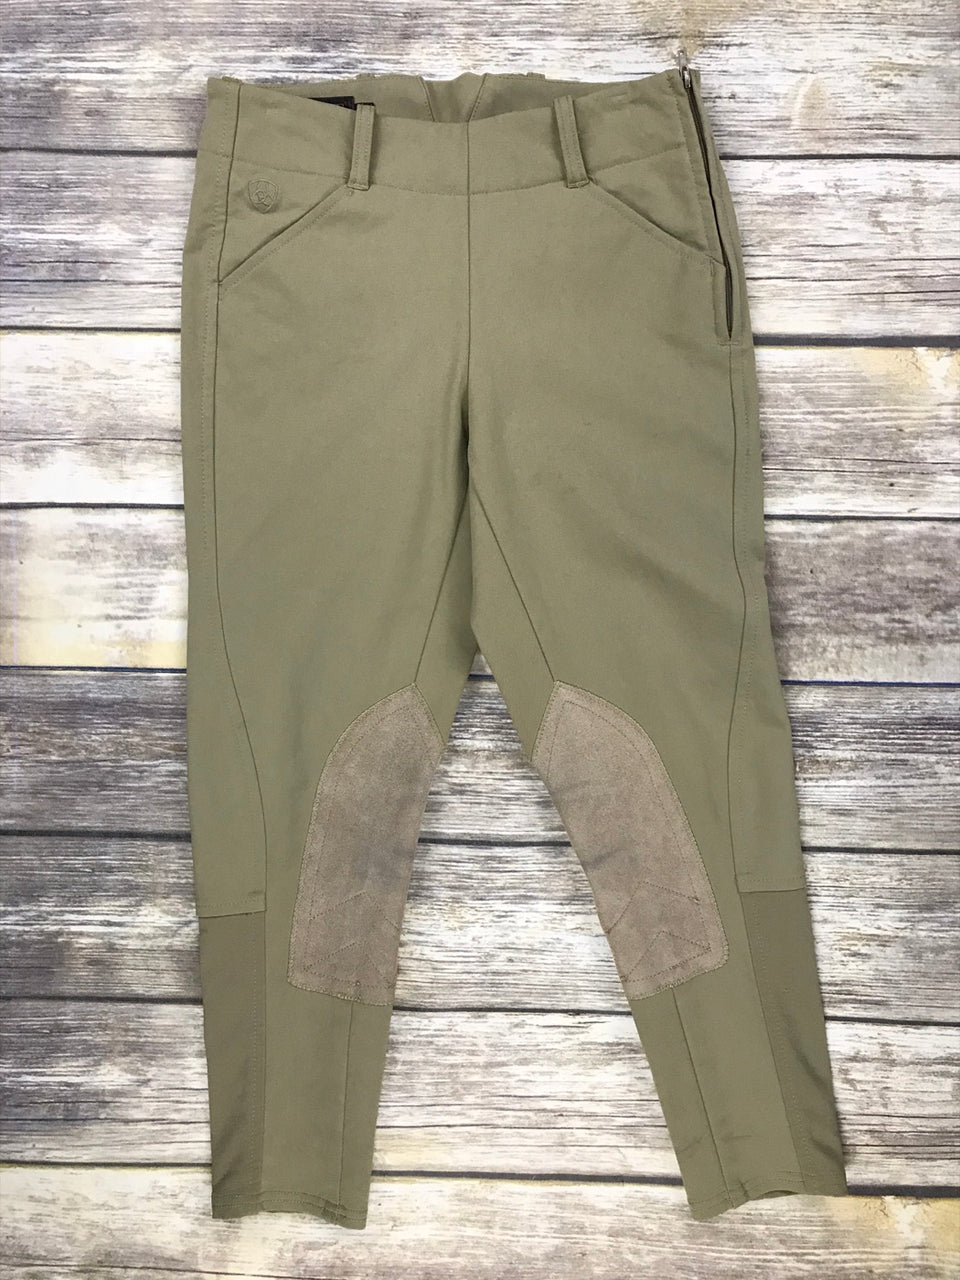 Ariat Pro Series Side Zip Breeches in Beige - Children's 10R